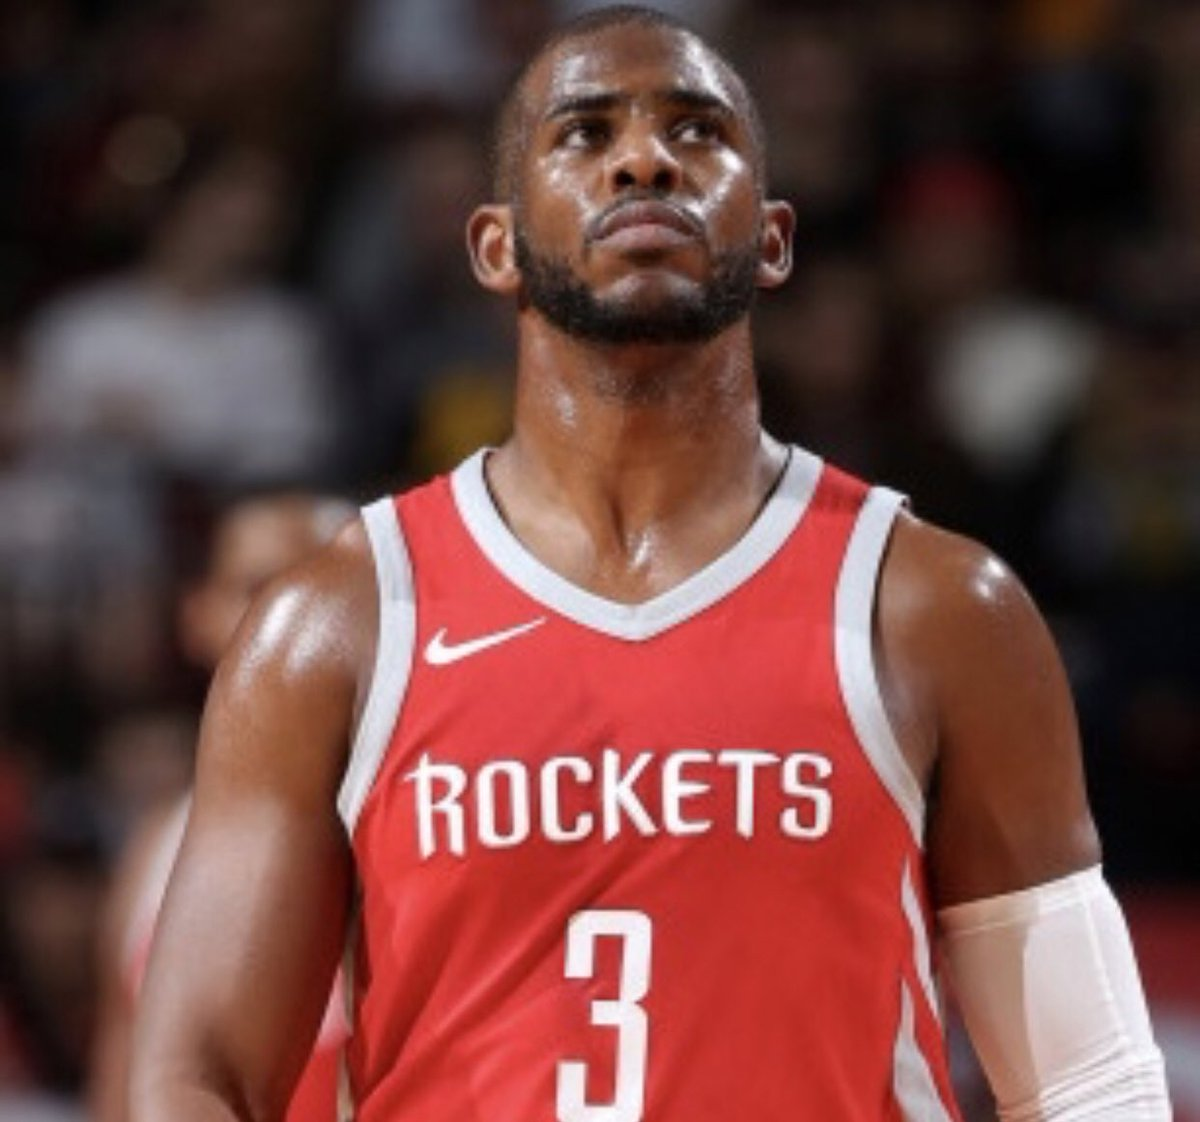 quality design beb03 e68bb ... he s trying not to get hurt again, he may be done etc etc,  ChrisPaul  left it all on the court last night. Much Respect  CP3pic.twitter .com aVDLVQuLui